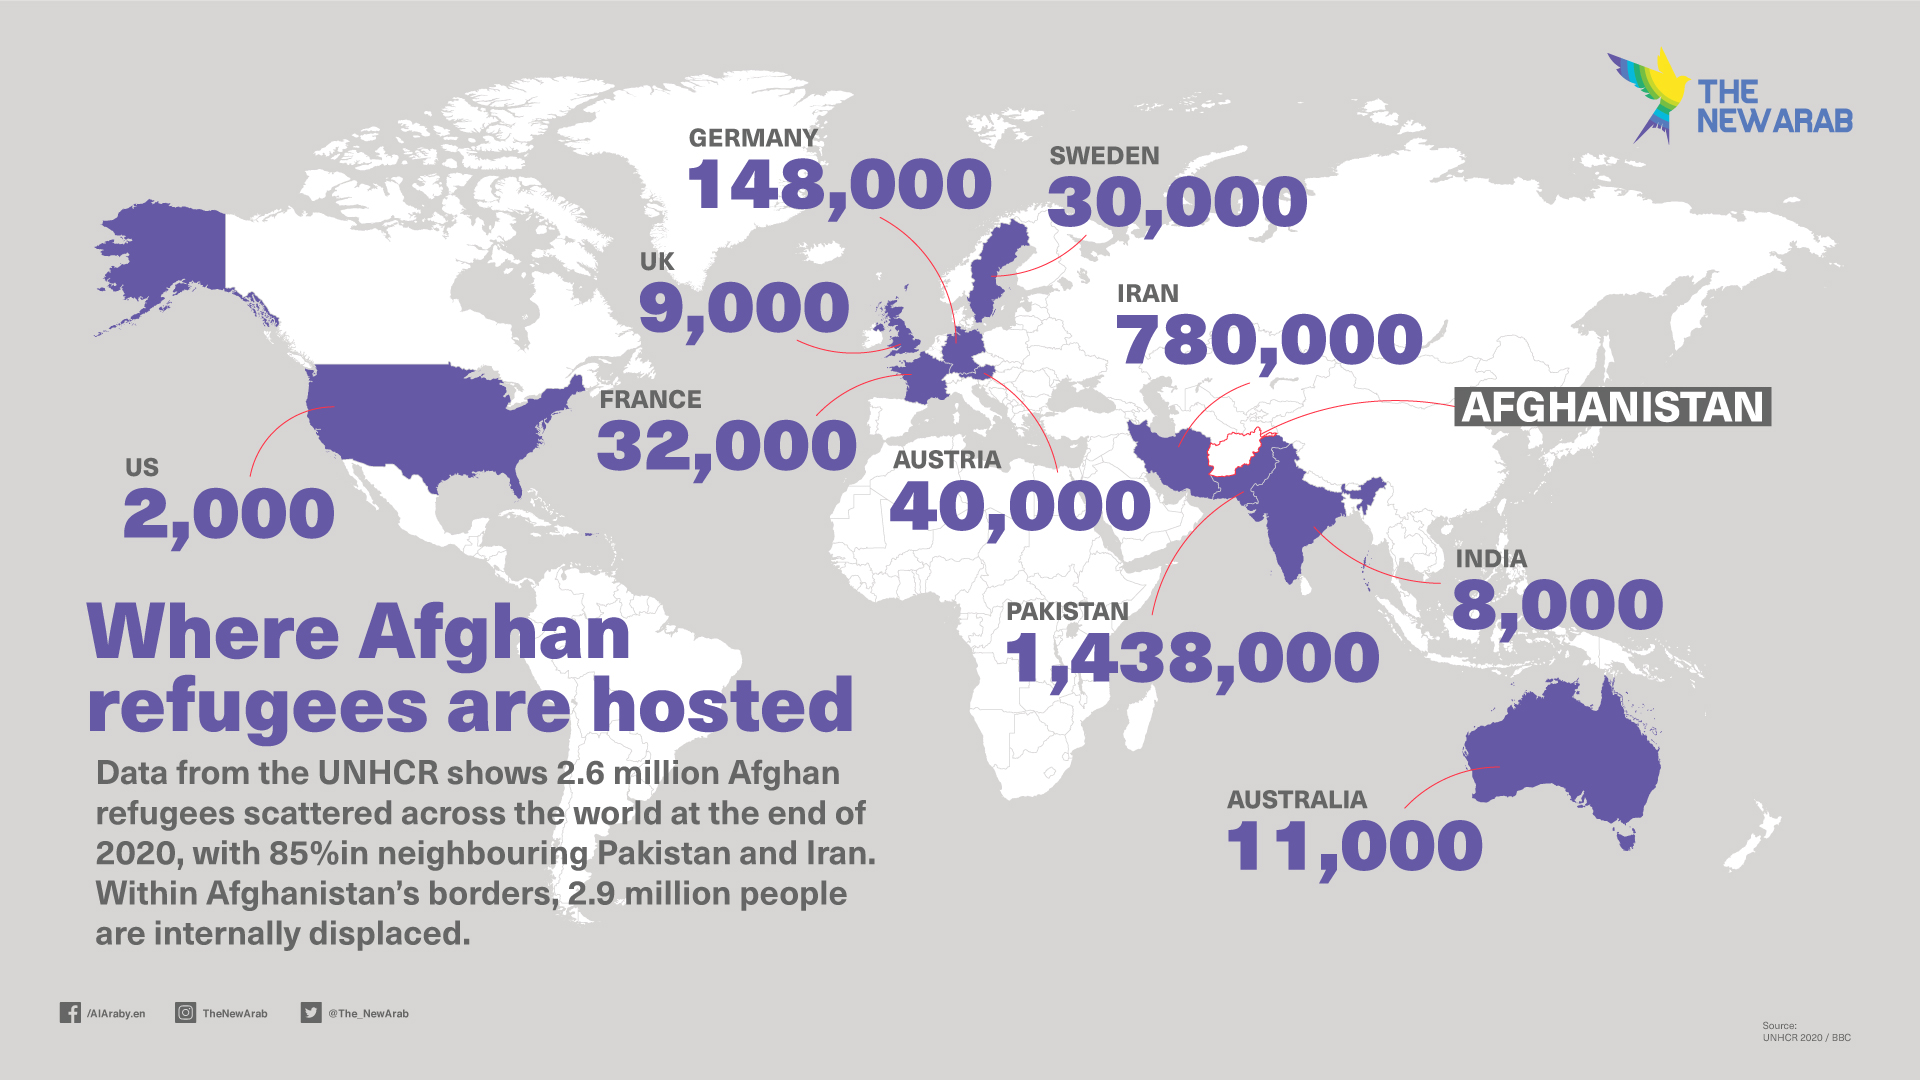 Where Afghan refugees are hosted